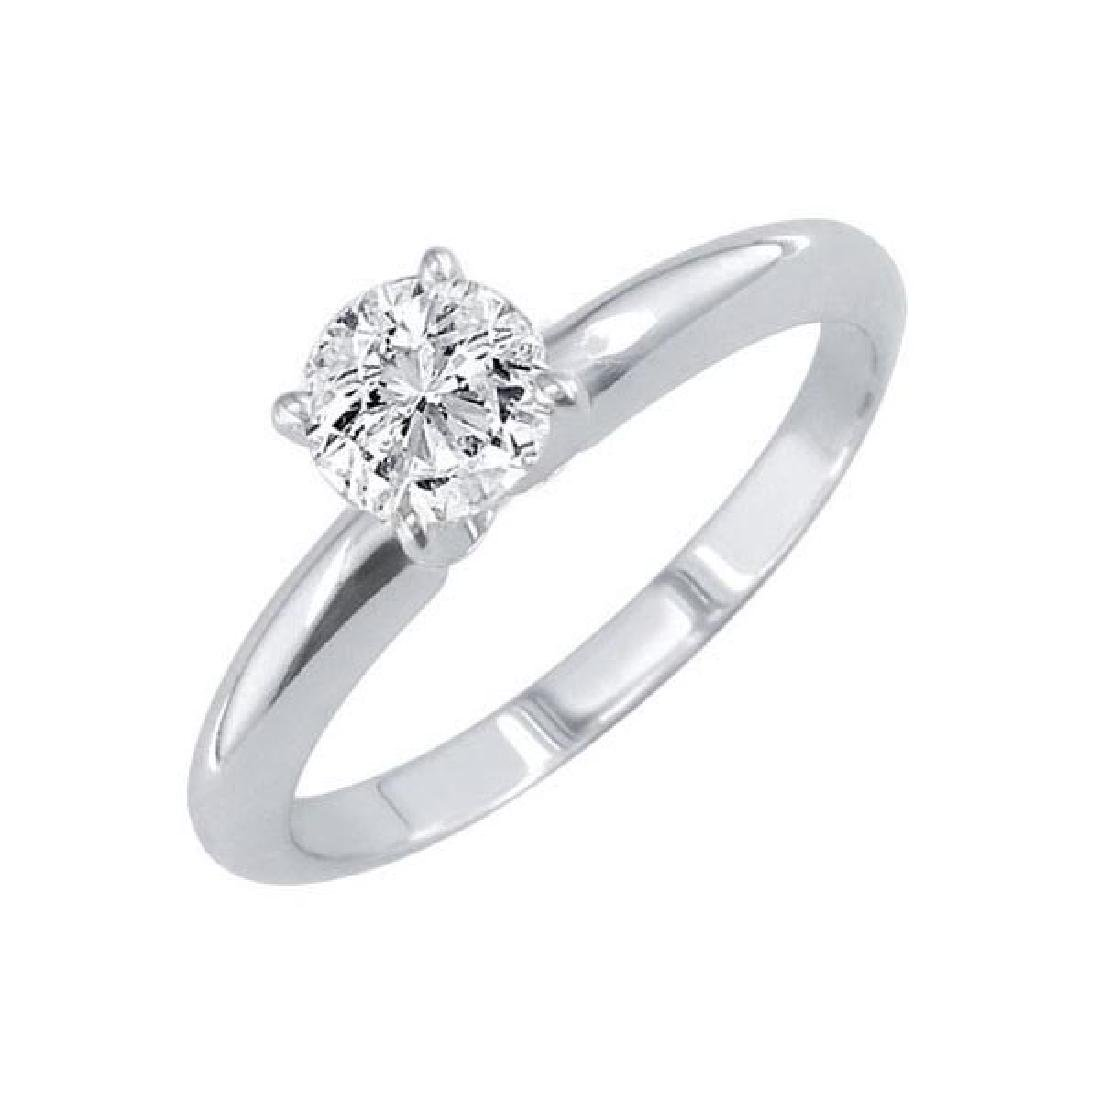 Certified 0.92 CTW Round Diamond Solitaire 14k Ring H/I